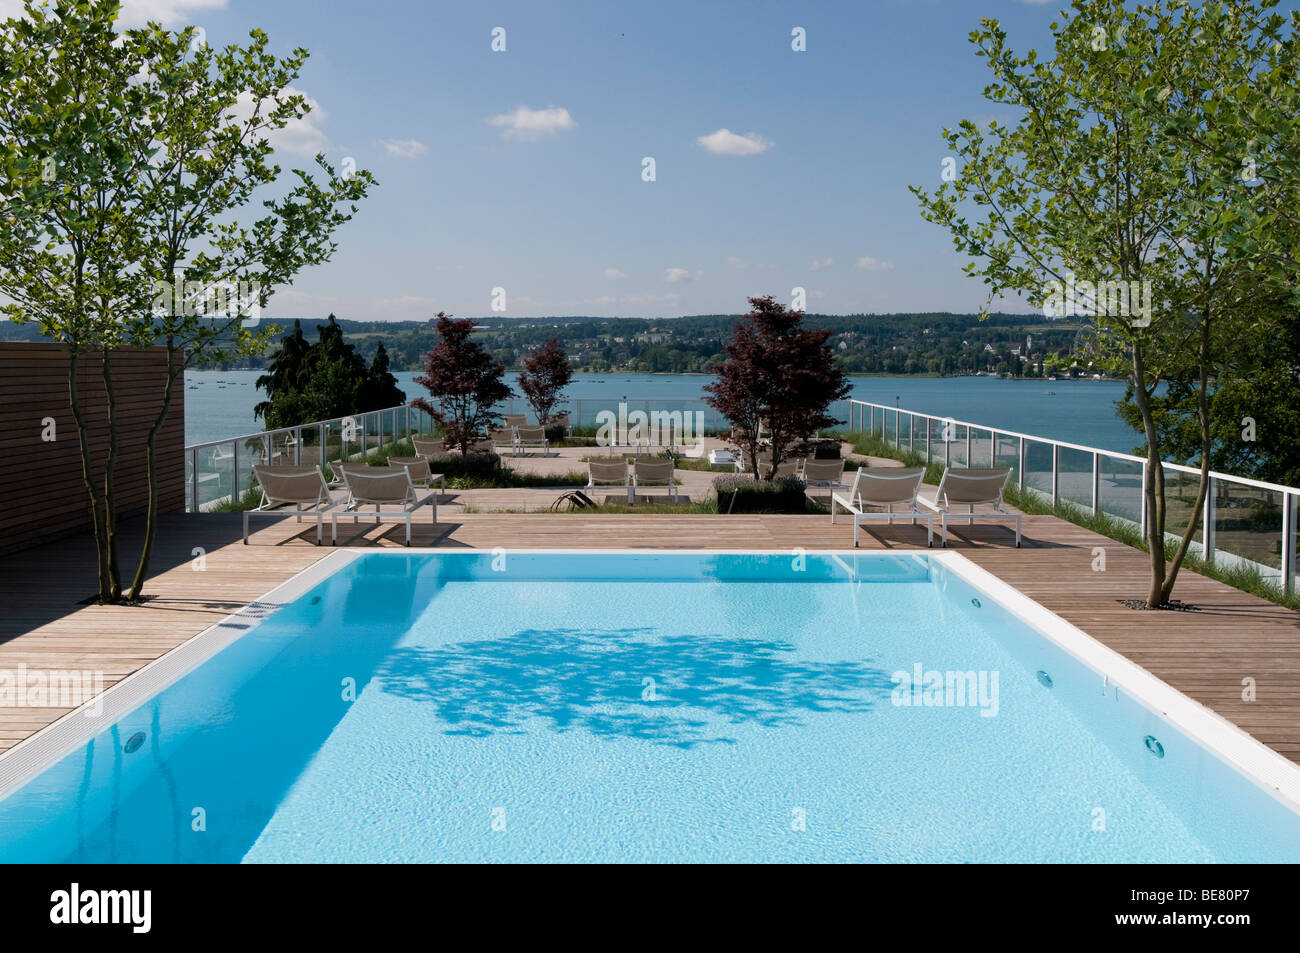 roof pool stockfotos roof pool bilder alamy. Black Bedroom Furniture Sets. Home Design Ideas